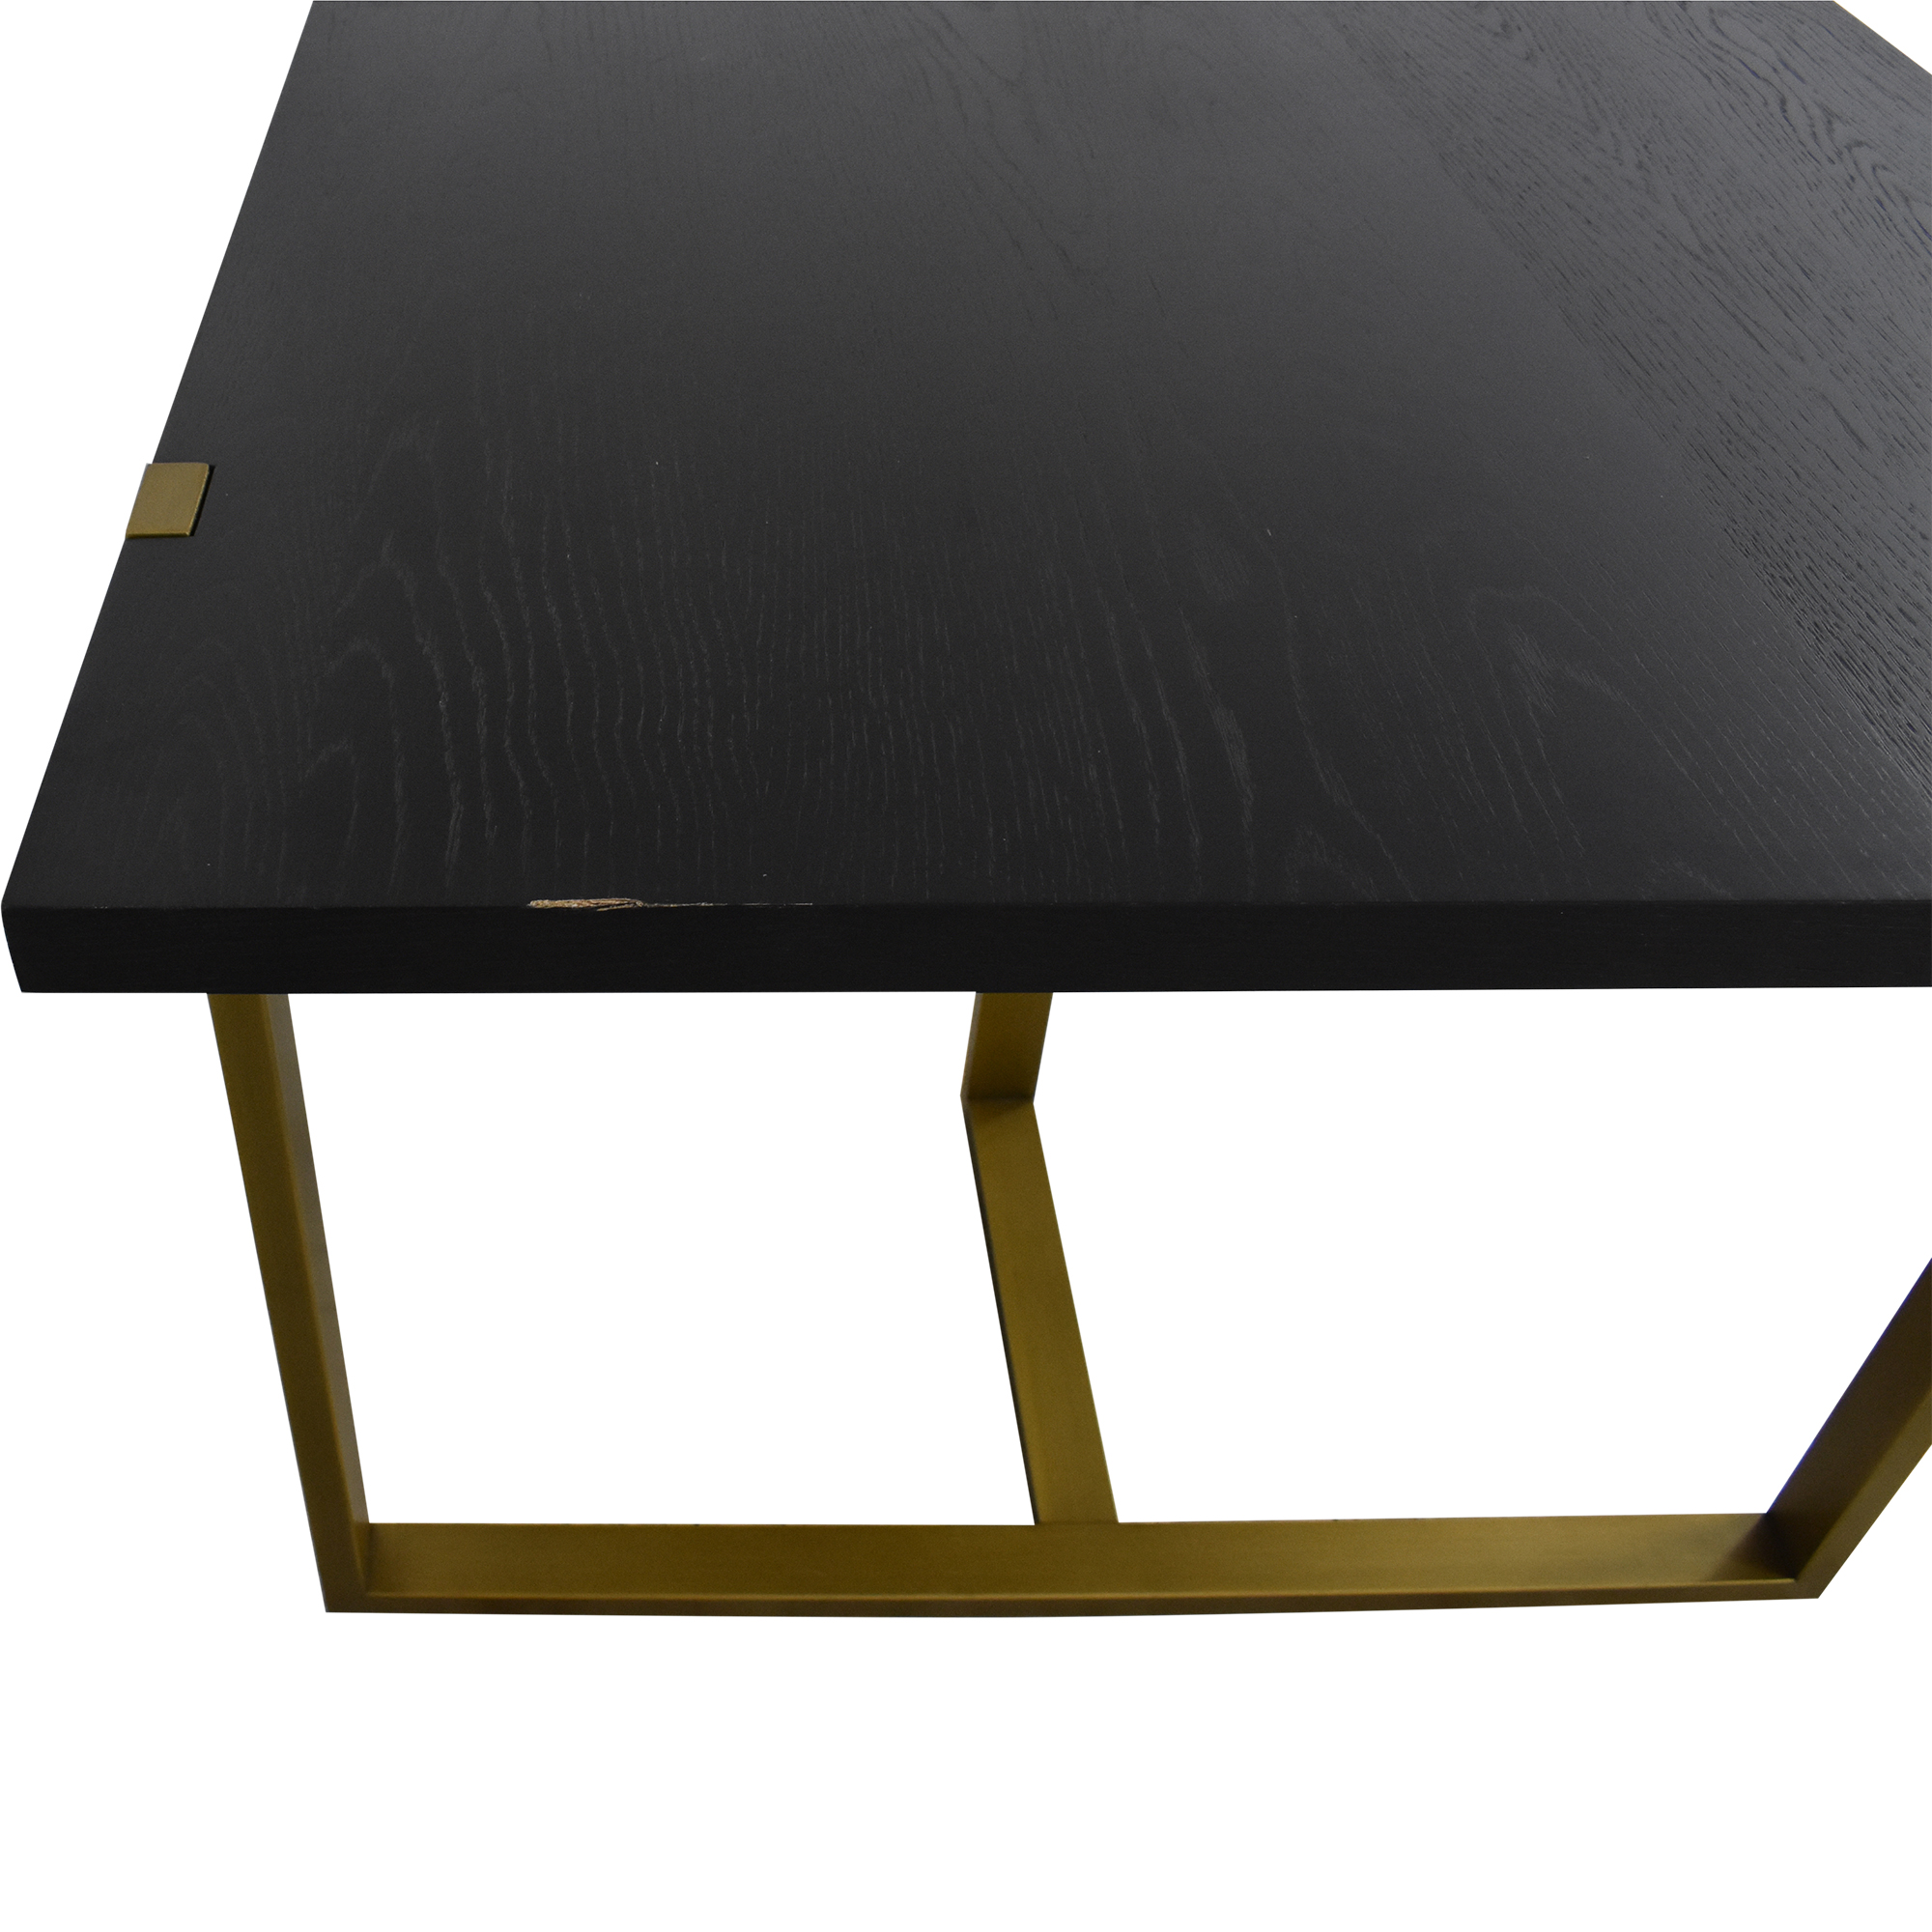 Article Article Oscuro Dining Table for sale